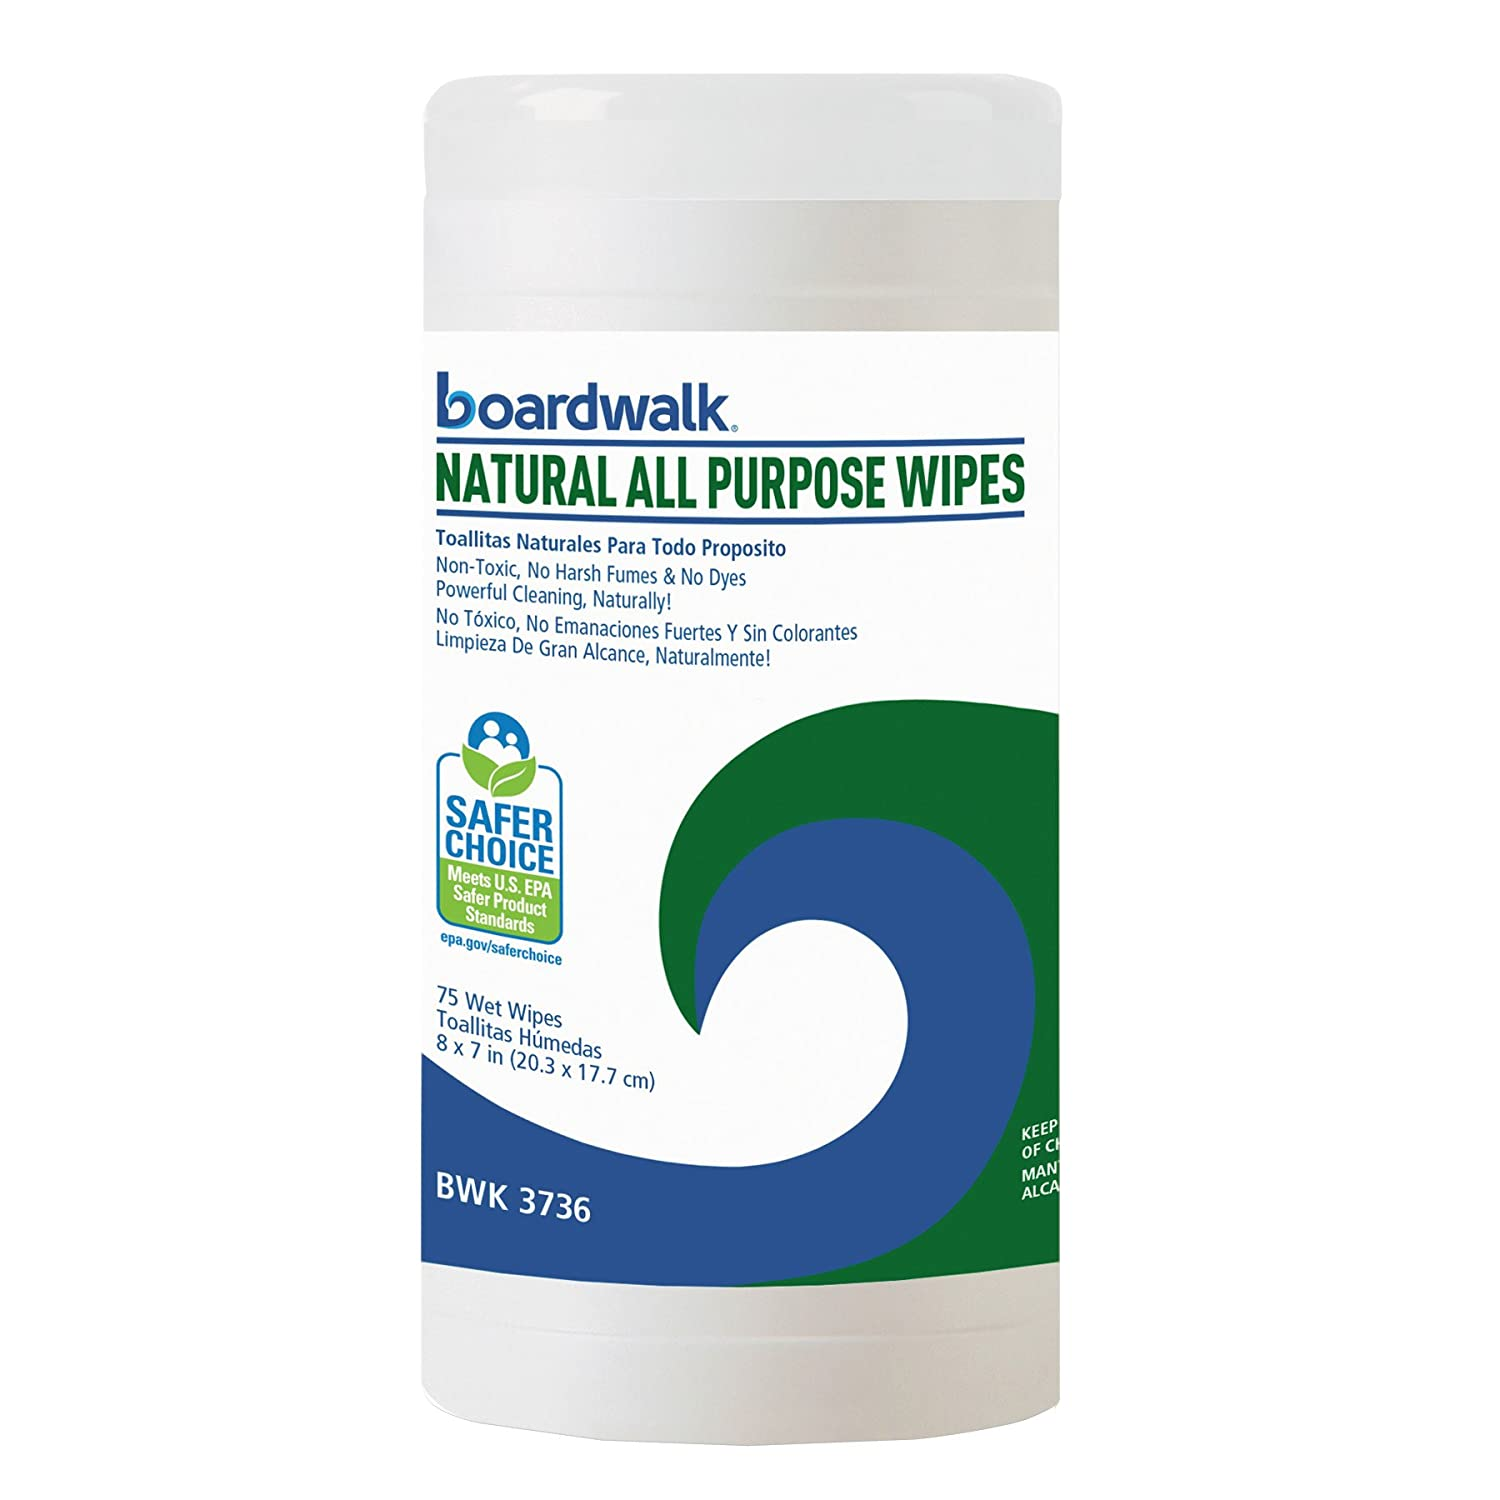 Amazon.com: Boardwalk 3736 Natural All Purpose Wipes, 7 x 8, Unscented, 75 Wipes Per Canister (Case of 6): Industrial & Scientific